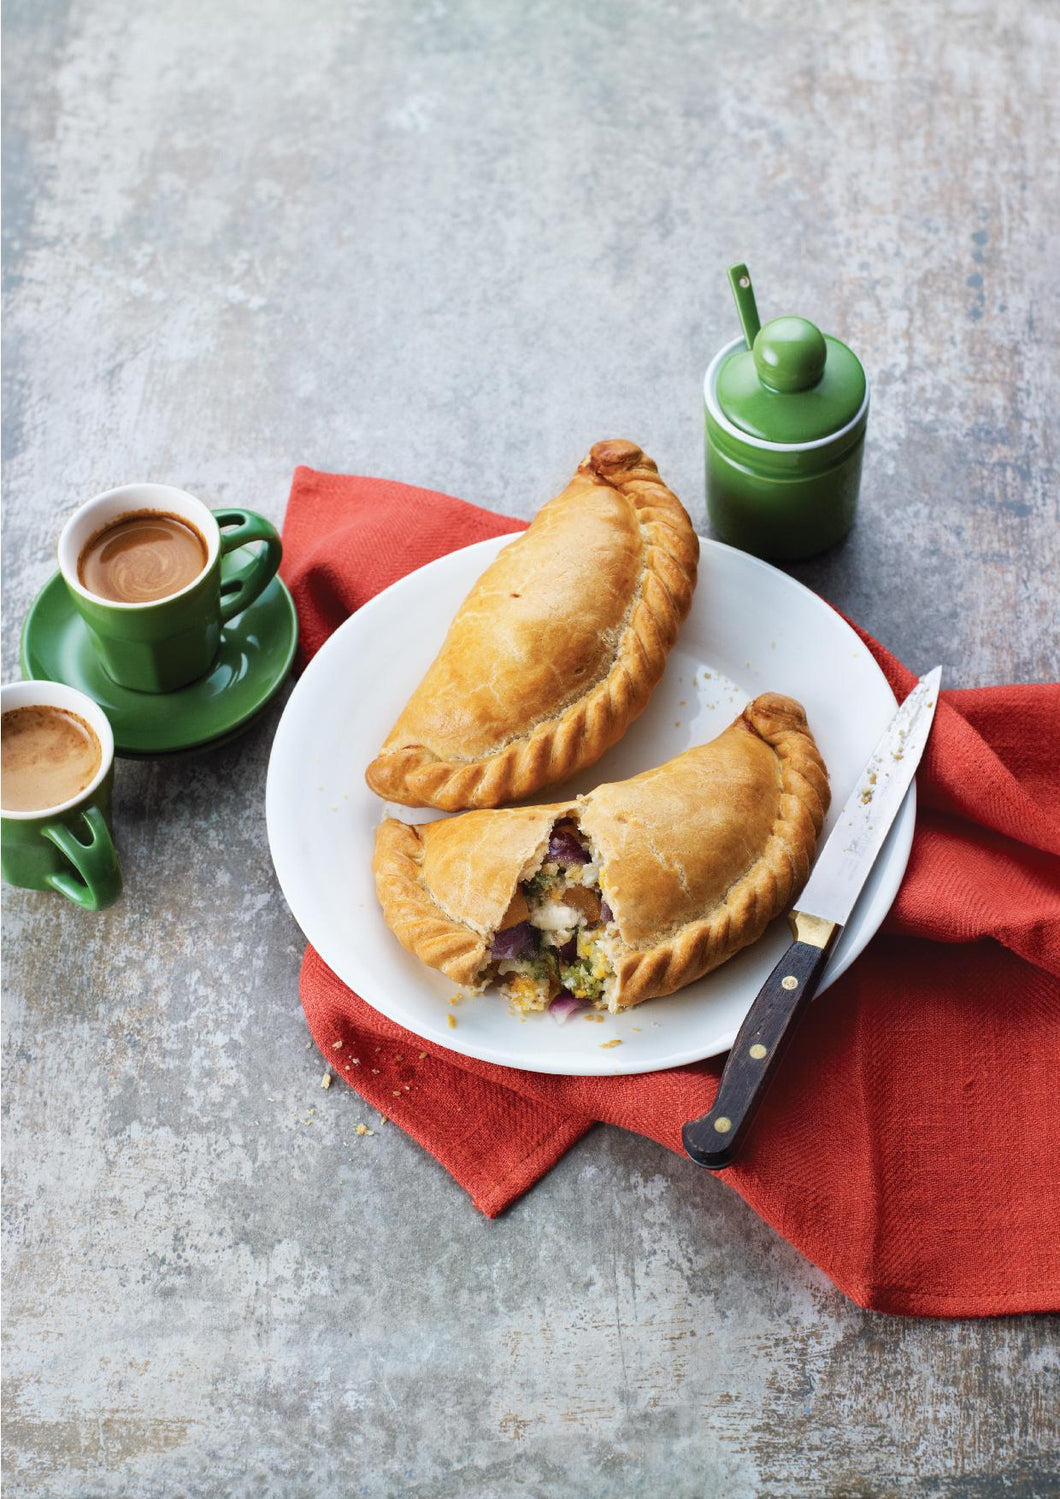 Vegan Wheatmeal Pasty VG (20x283g)